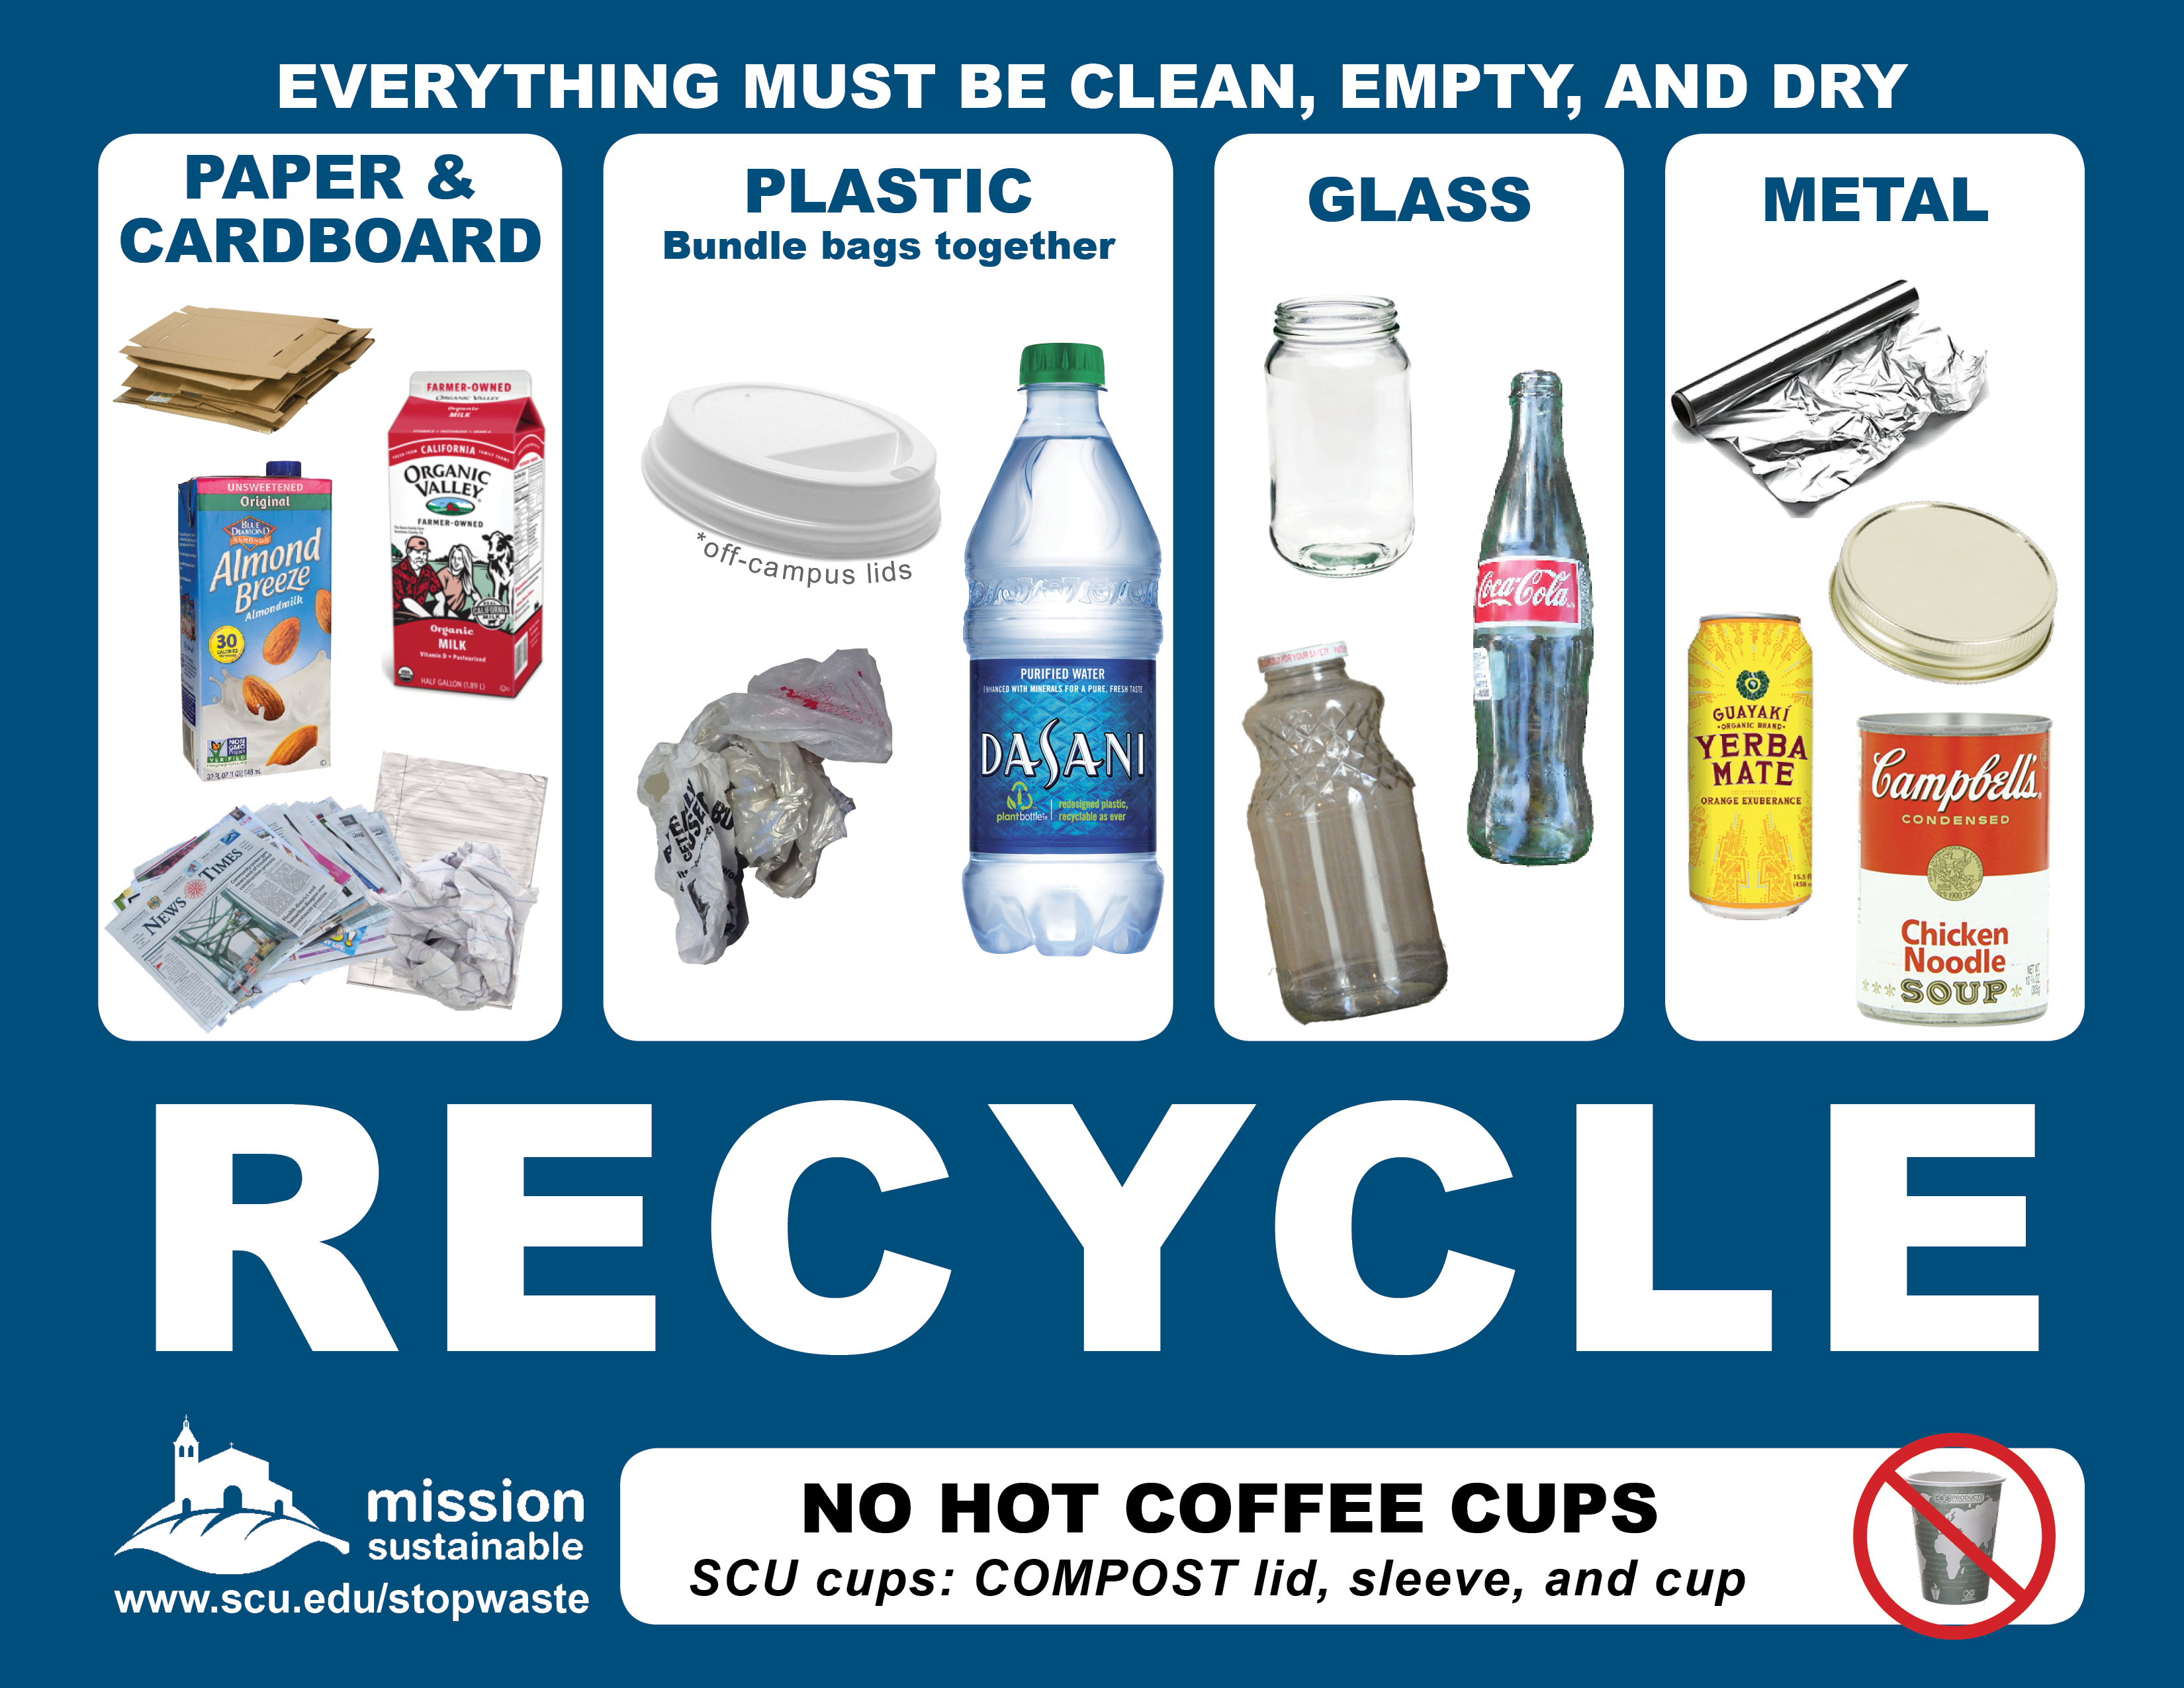 Pictures of items that can be recycled, including glass, plastic bottles, and paper. - Sign showing pictures of items that can be recycled, such as plastic bottles. Link to file